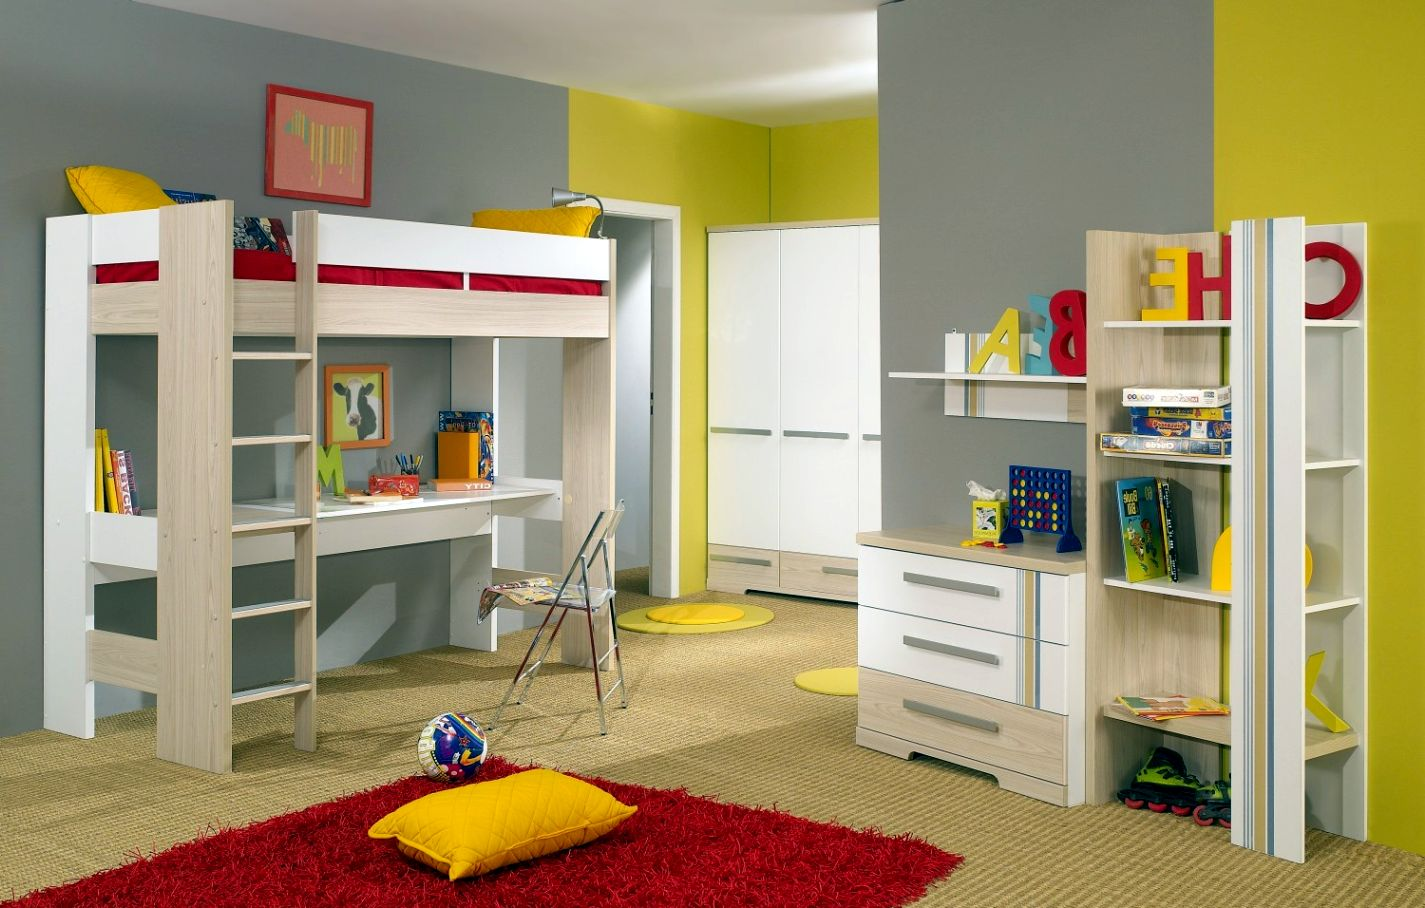 14 Adorable Modern Loft Beds Design Ideas For Your Kids